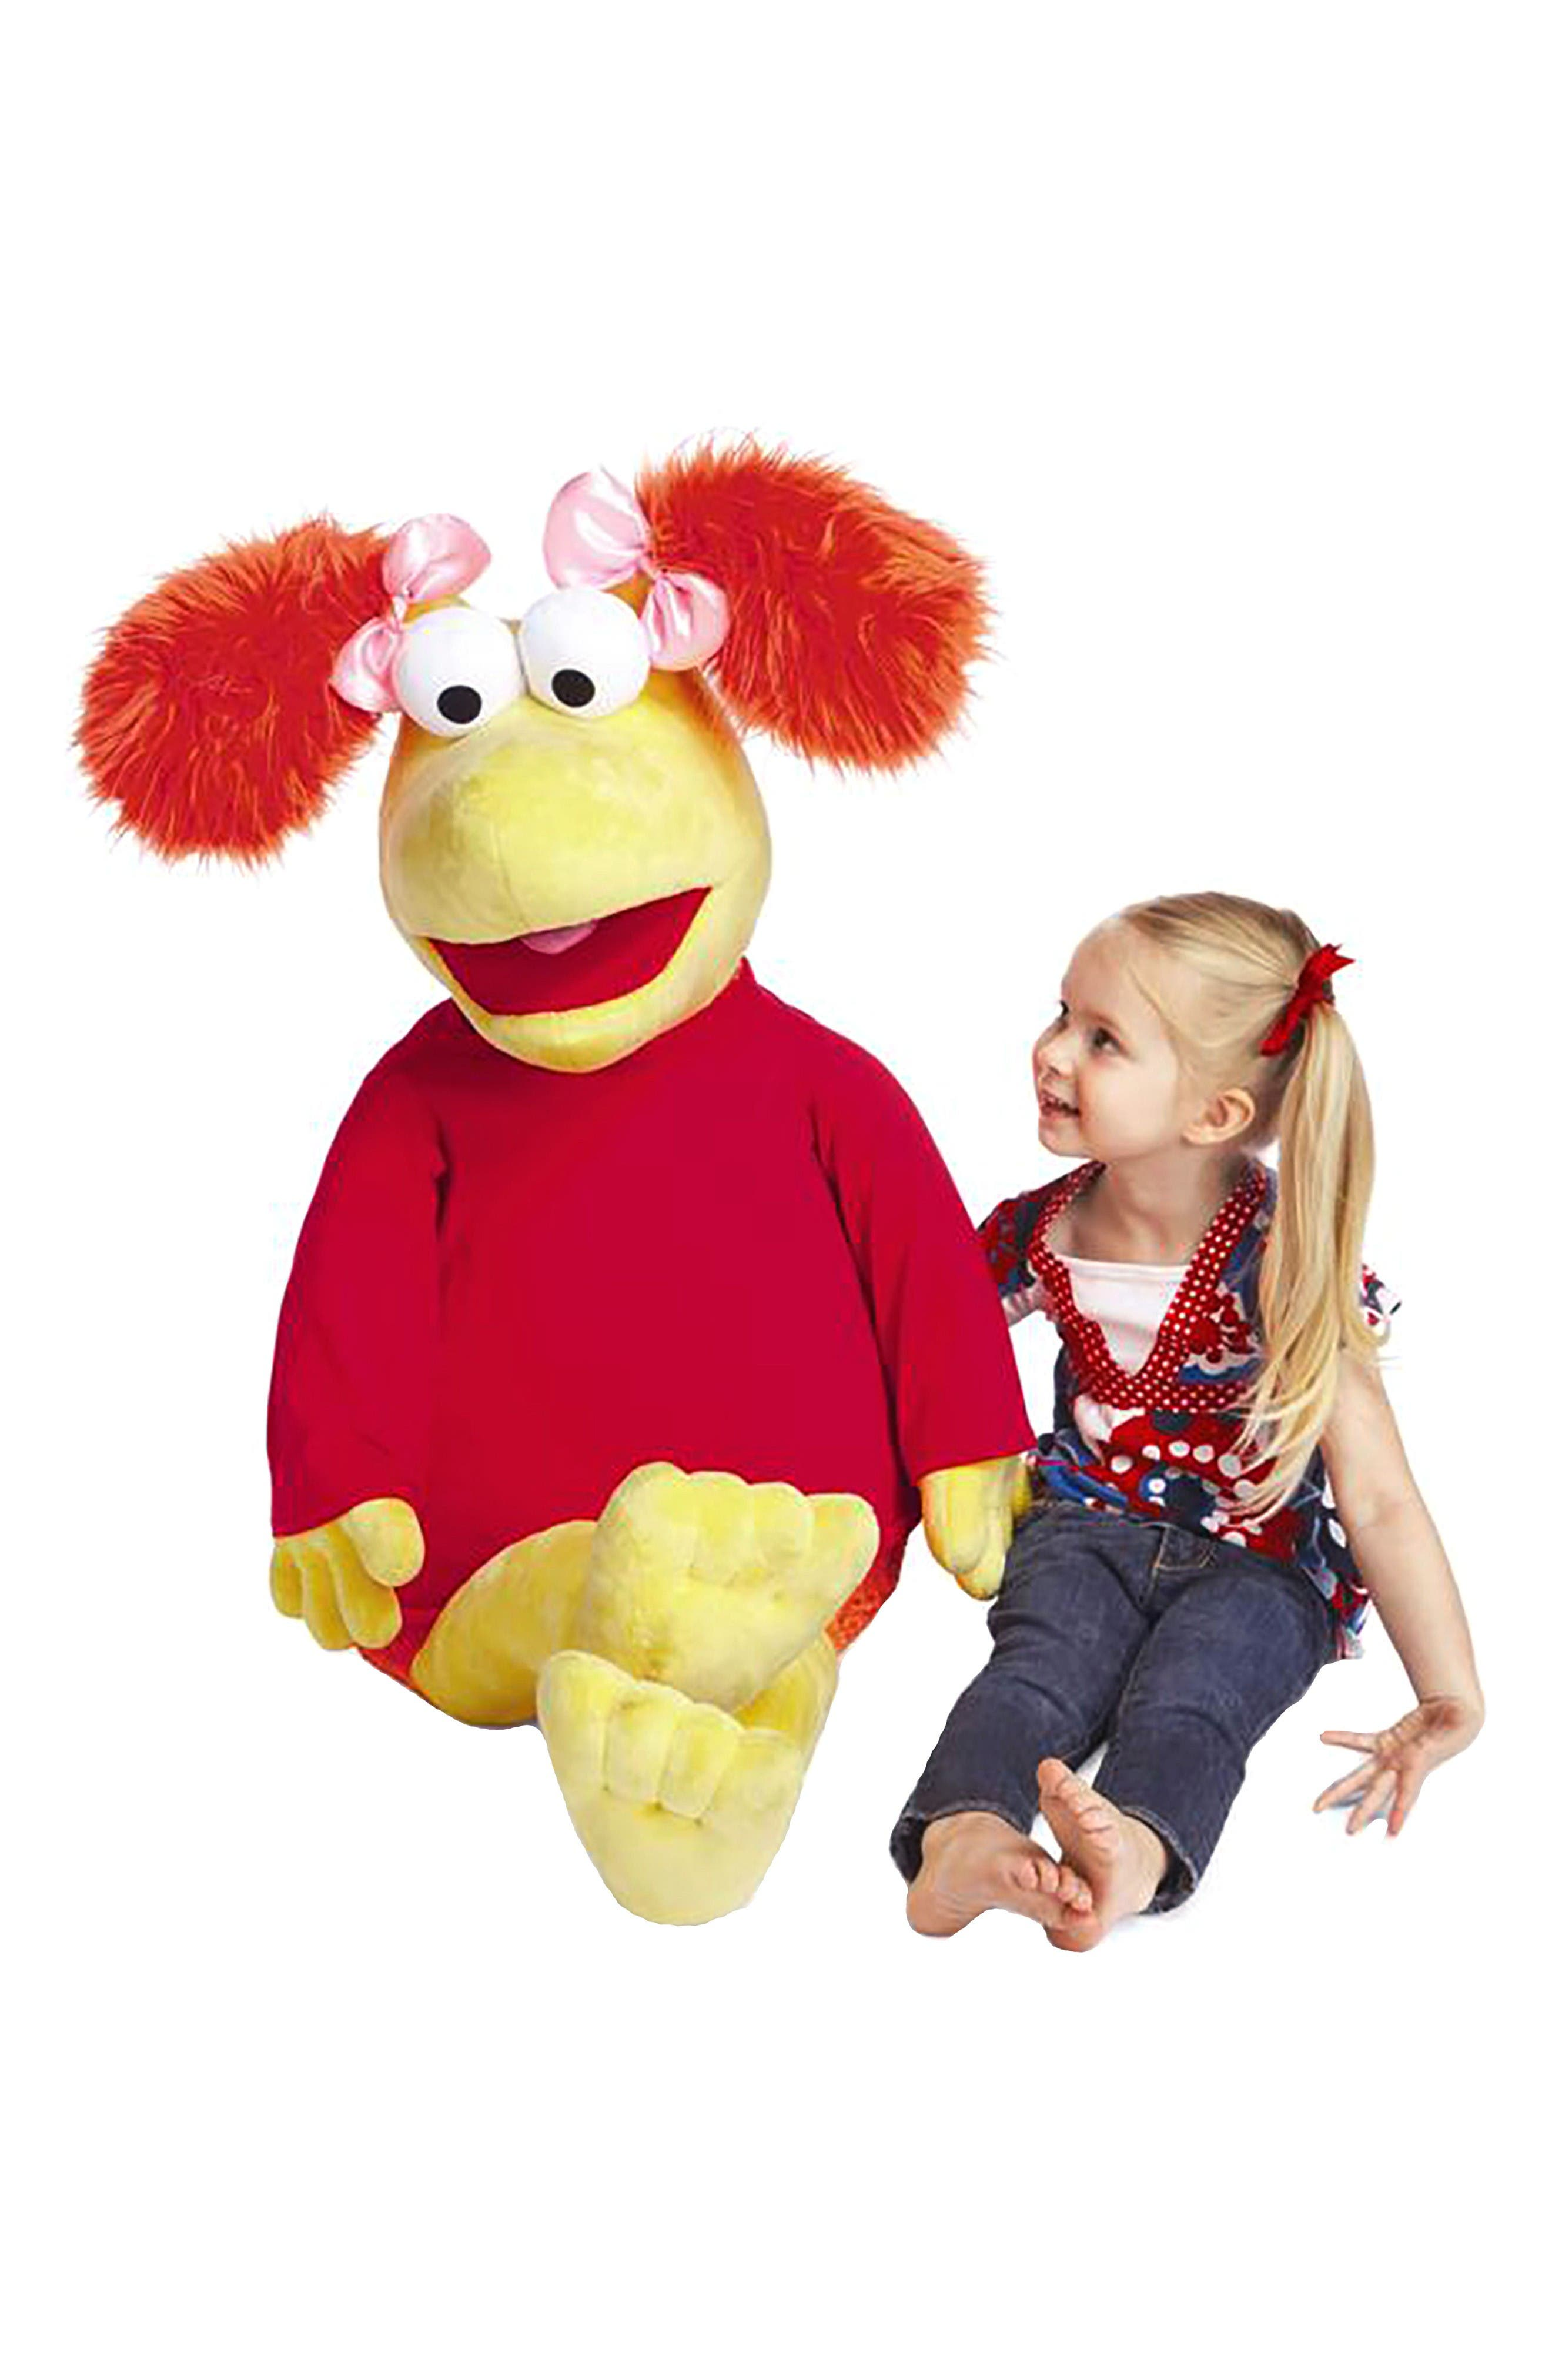 Fraggle Rock Jumbo Red Stuffed Animal,                             Alternate thumbnail 2, color,                             Red